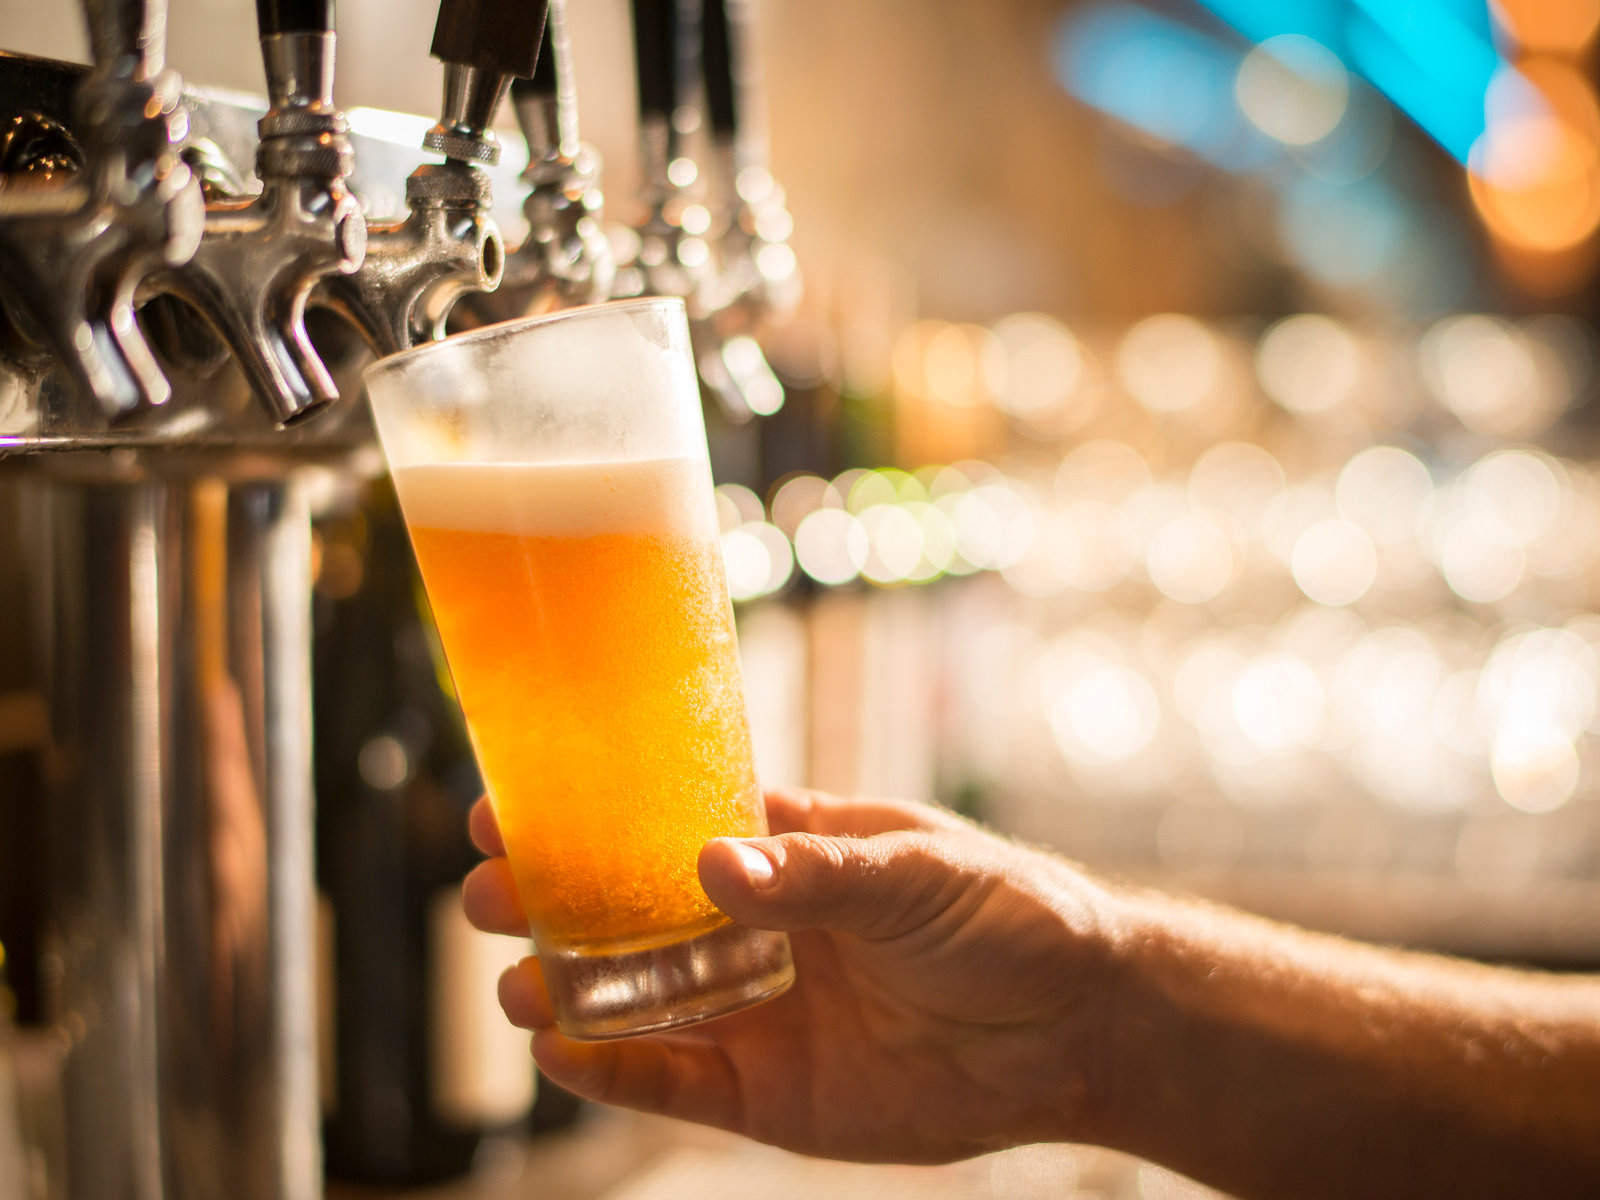 Are Millennials Driving Down the Price of Beer in Bars?